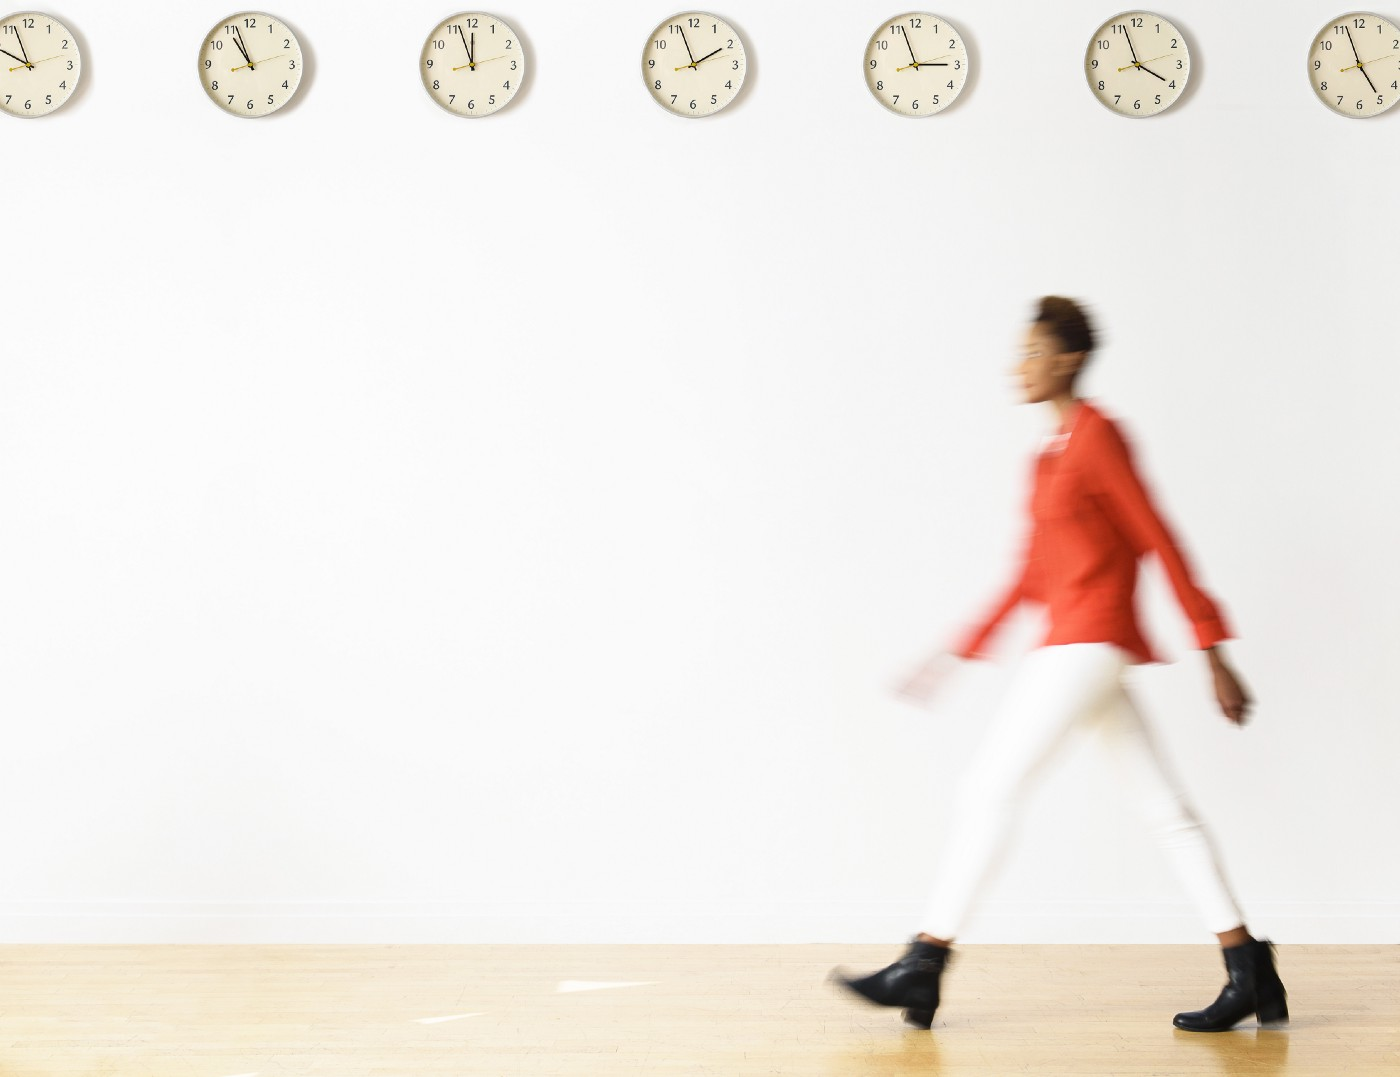 Blurry image of a woman walking past clocks.